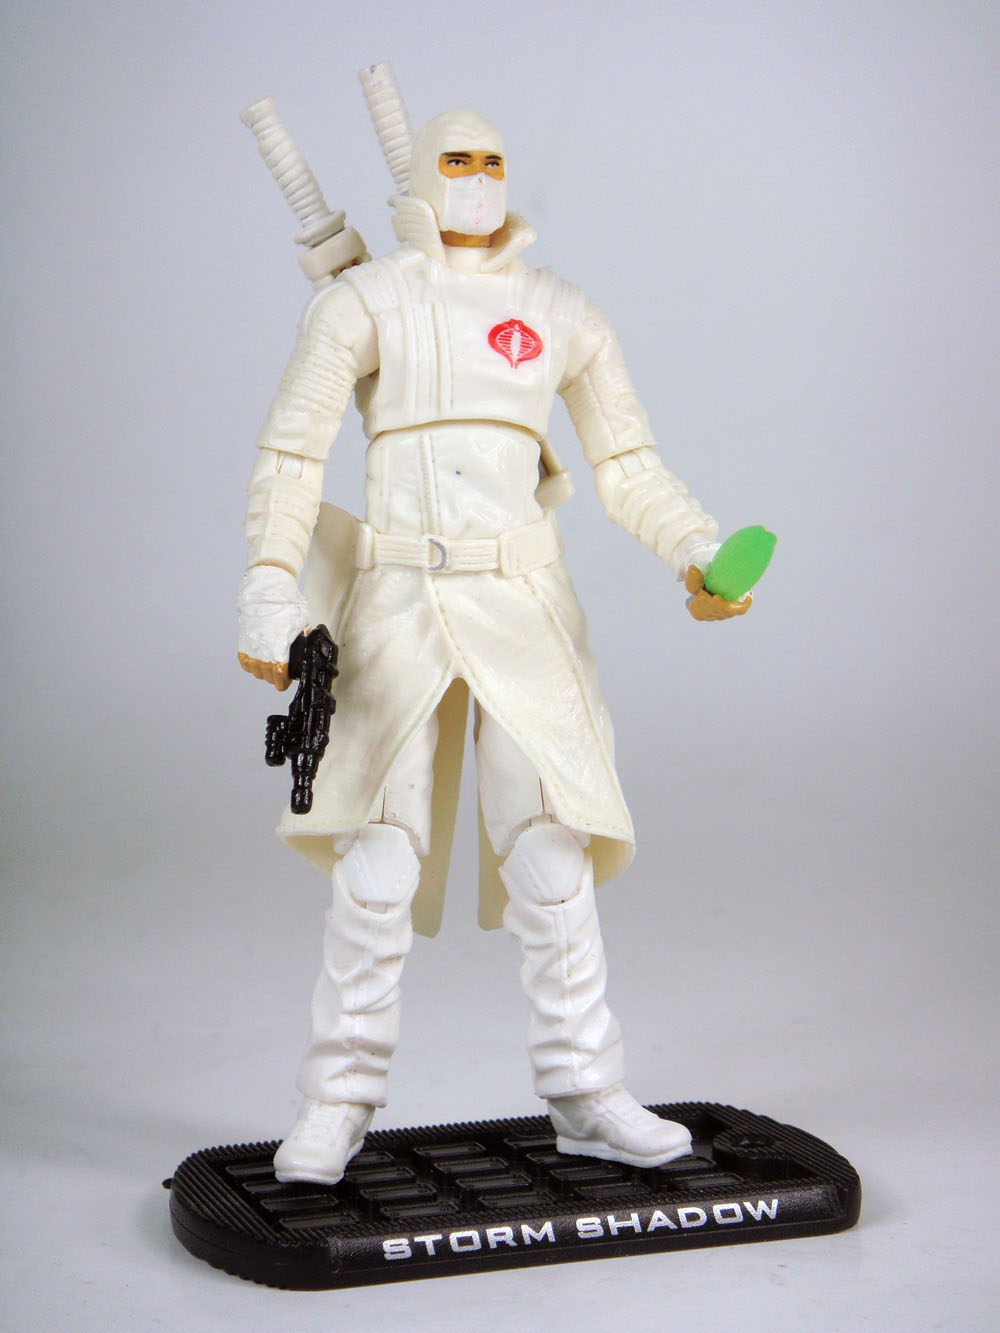 gijoe movie rise of cobra storm shadow action figure